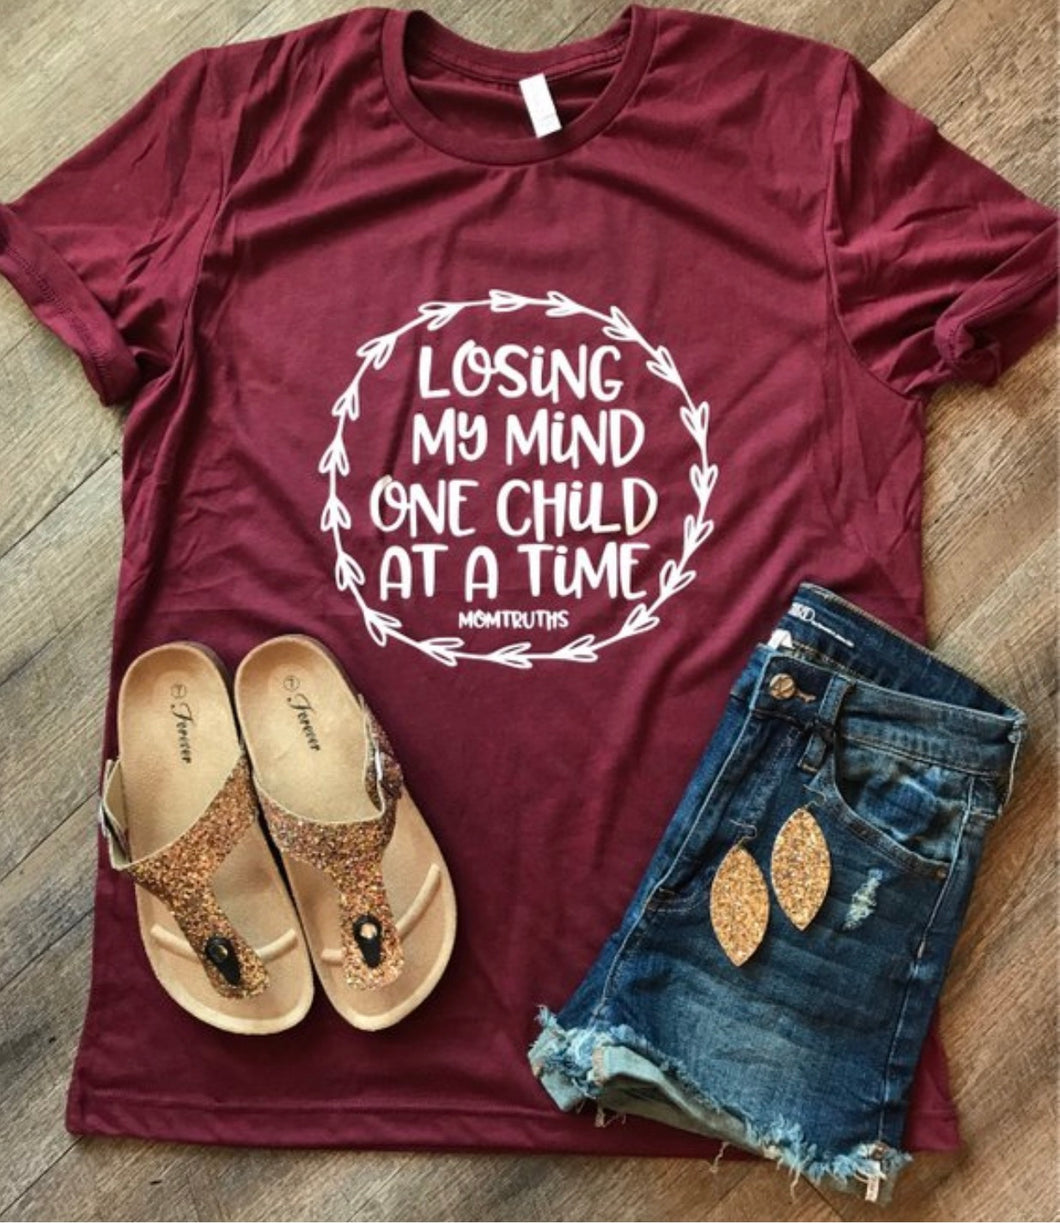 Losing my mind one child at a time laureth laurel wreath custom mom truth momtruth tee. Funny mom shirt - Mavictoria Designs Hot Press Express